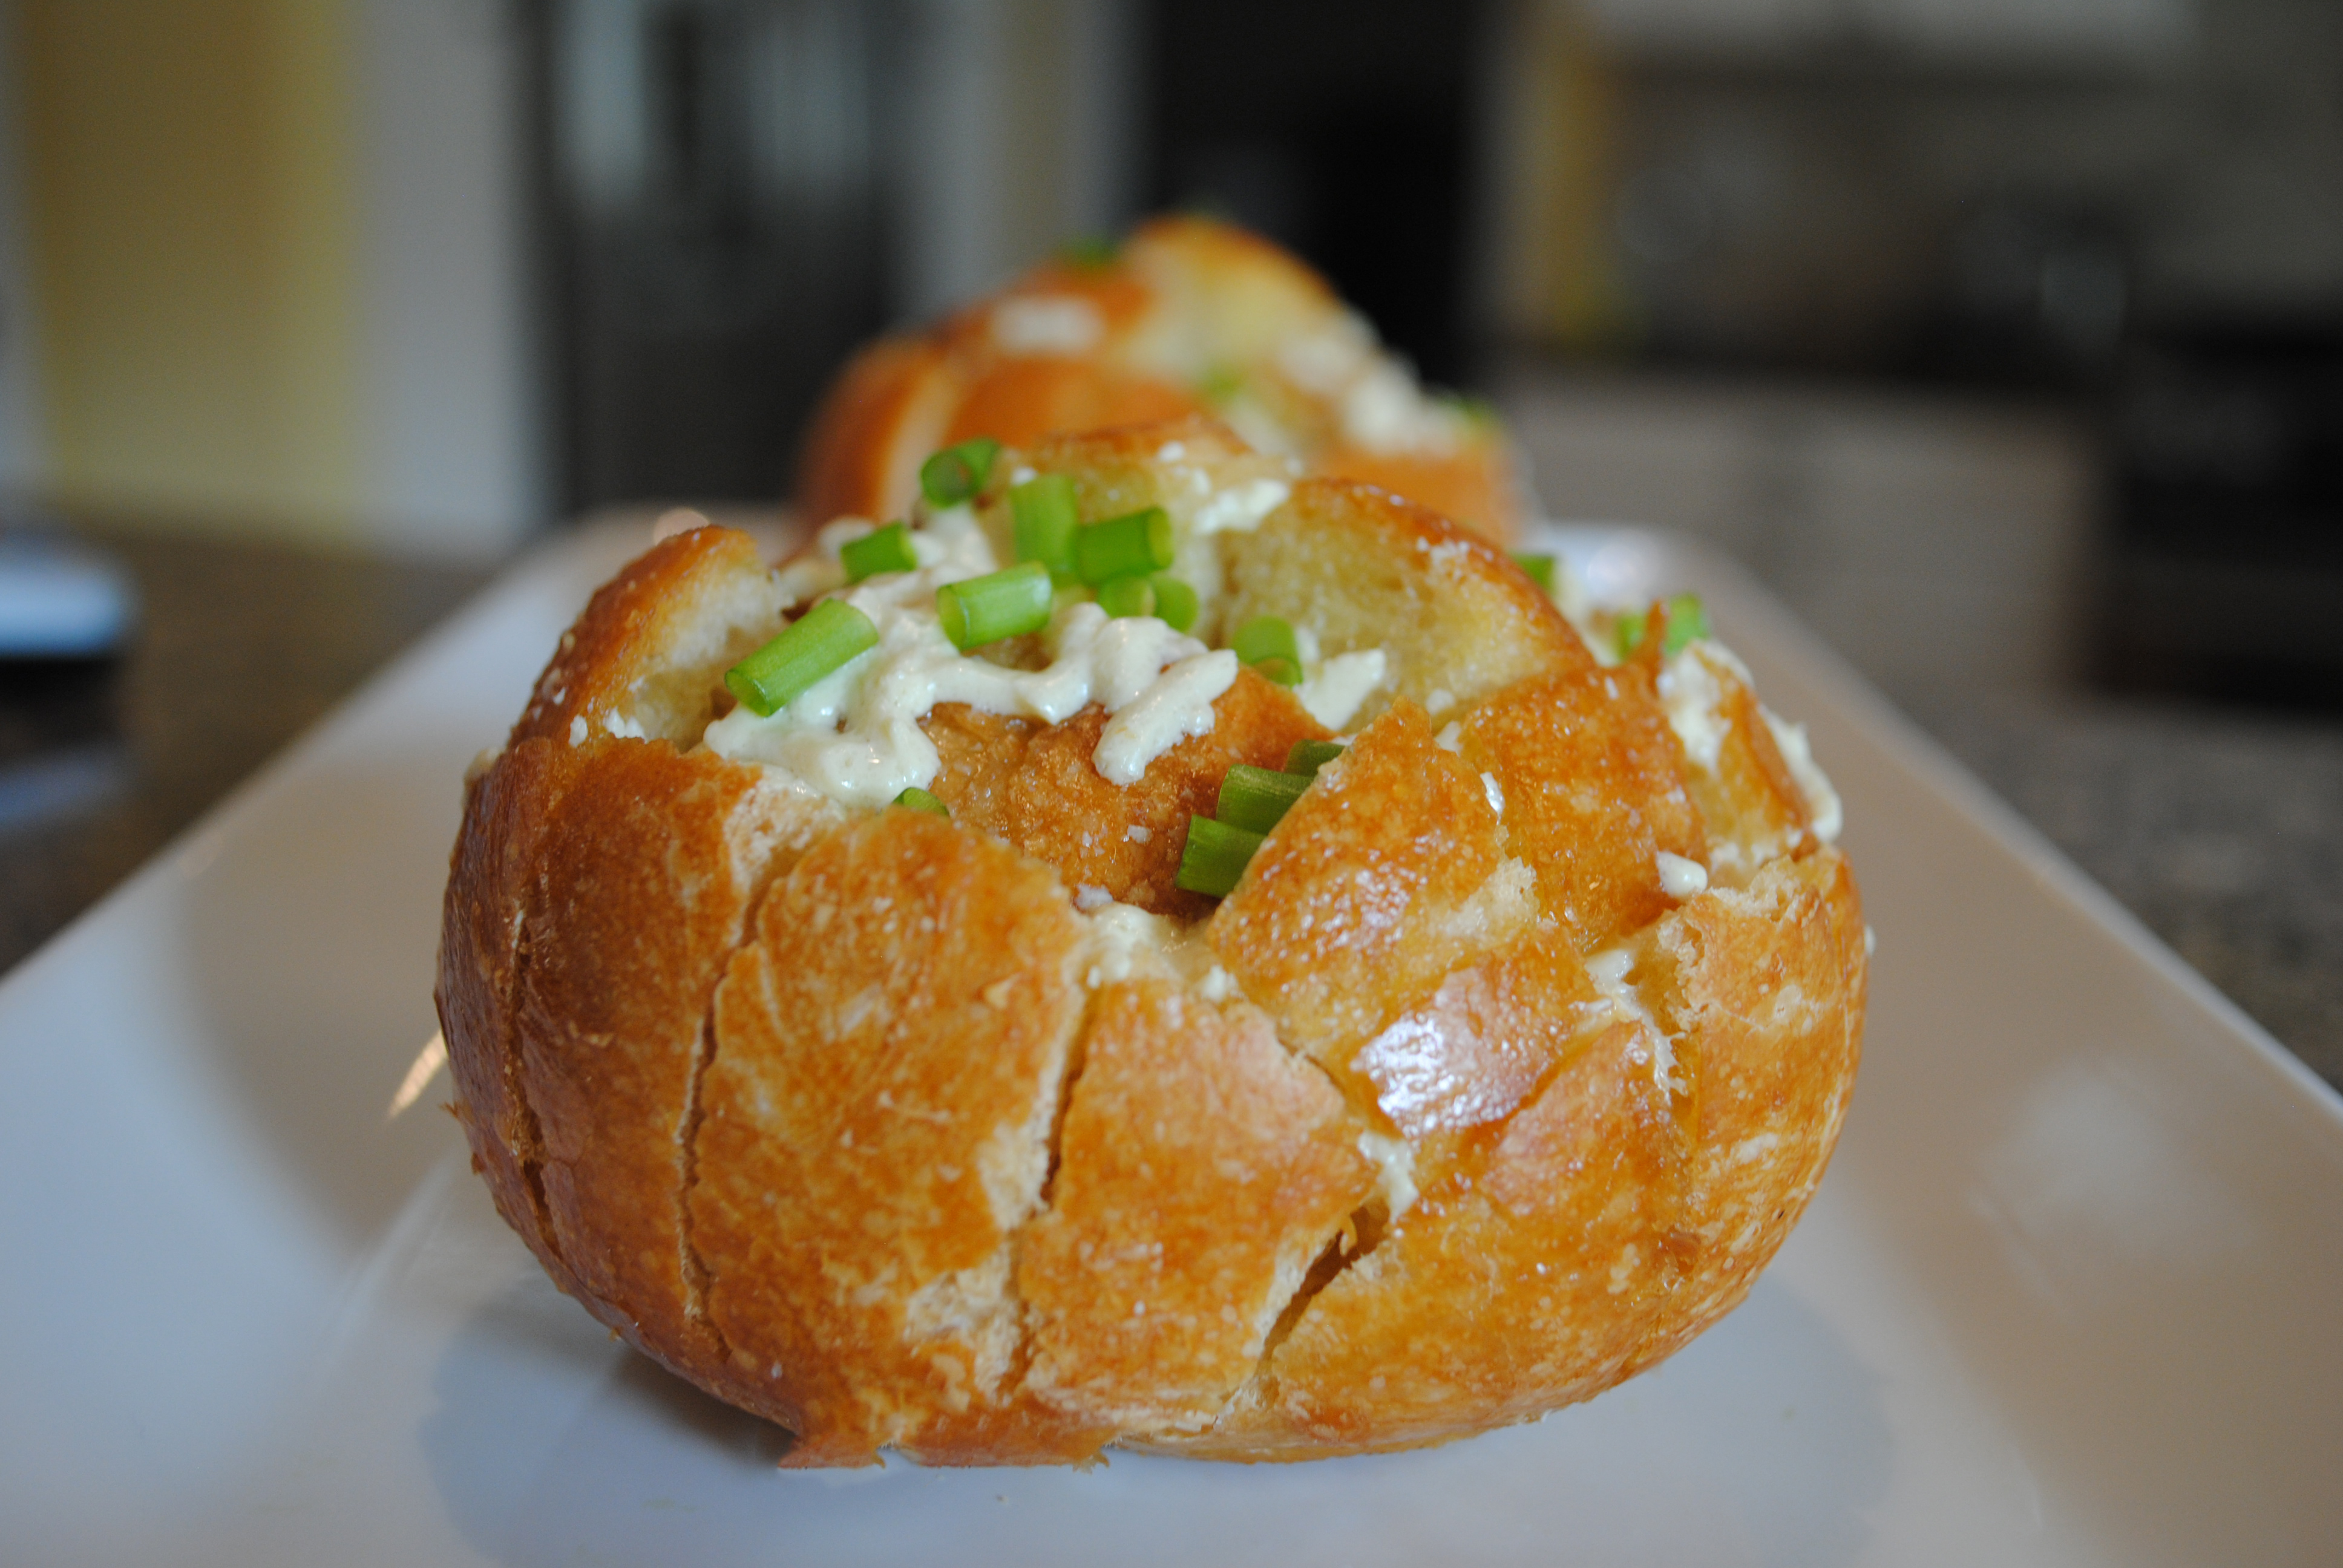 Vegan Bloomin' Onion Bread